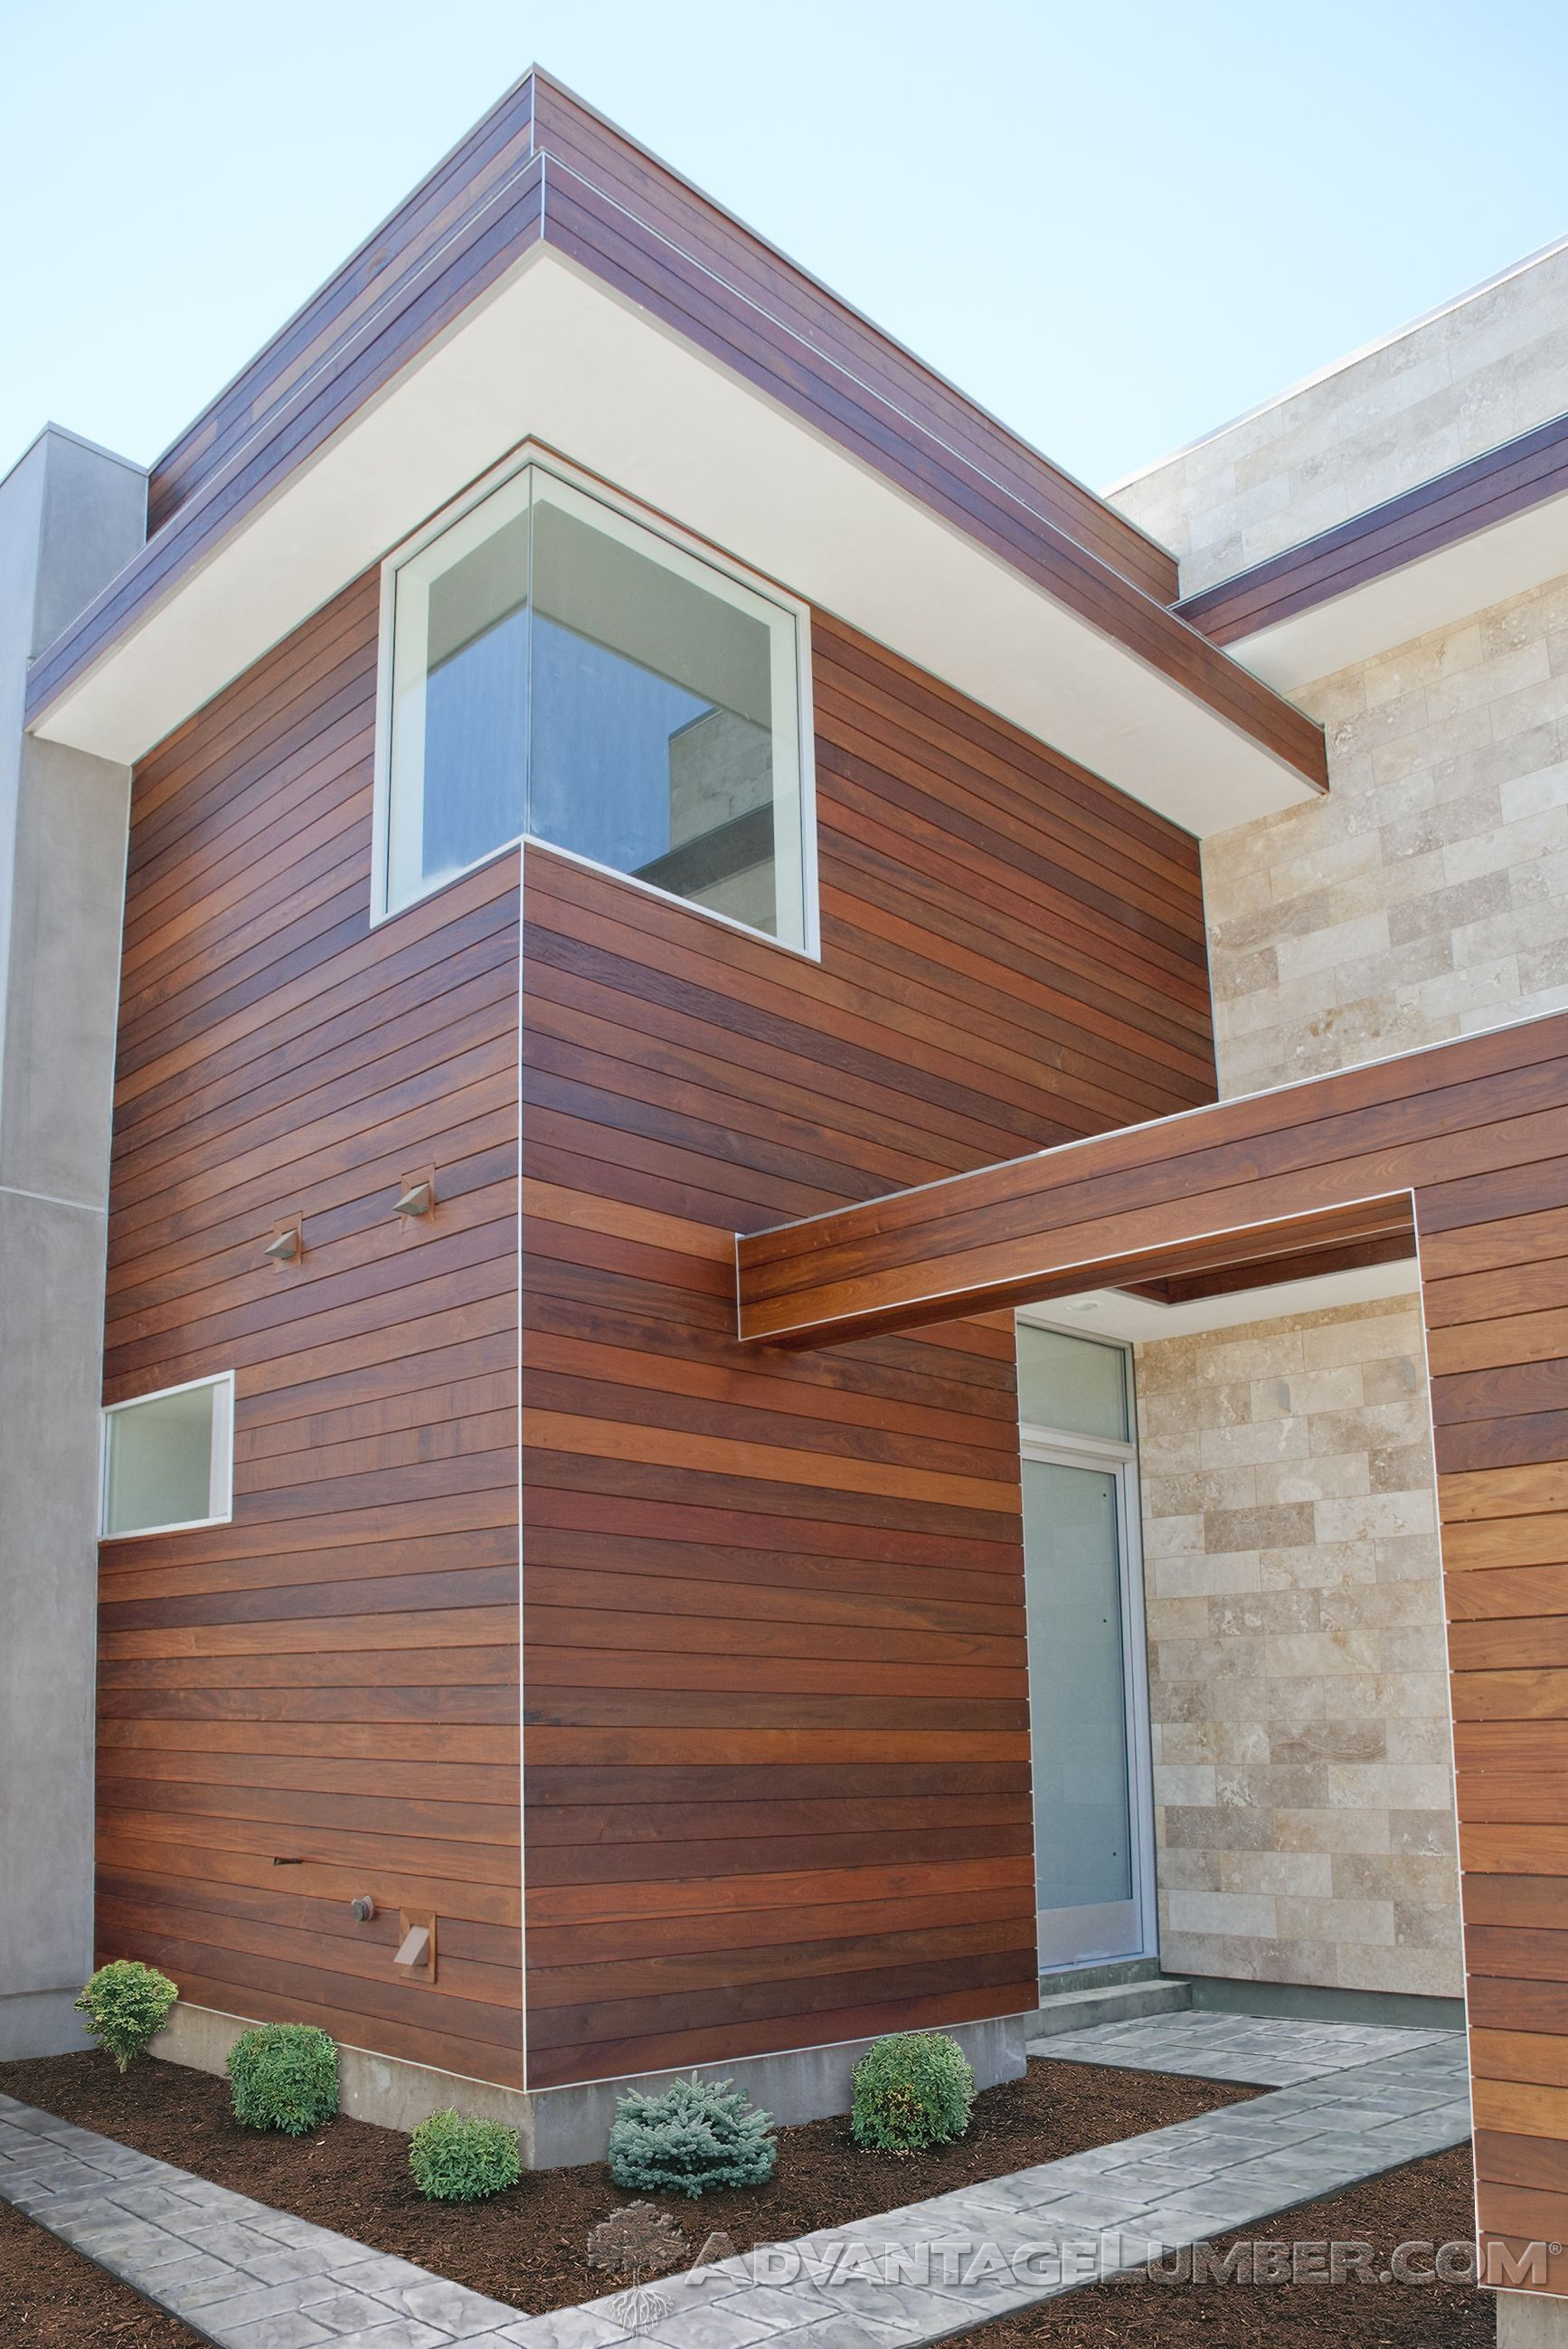 With Advantage Ipe Shiplap Siding You Will Have Long Term Durability As Well As A Sleek Appearance A Ranch House Exterior House Exterior Wood Siding Exterior